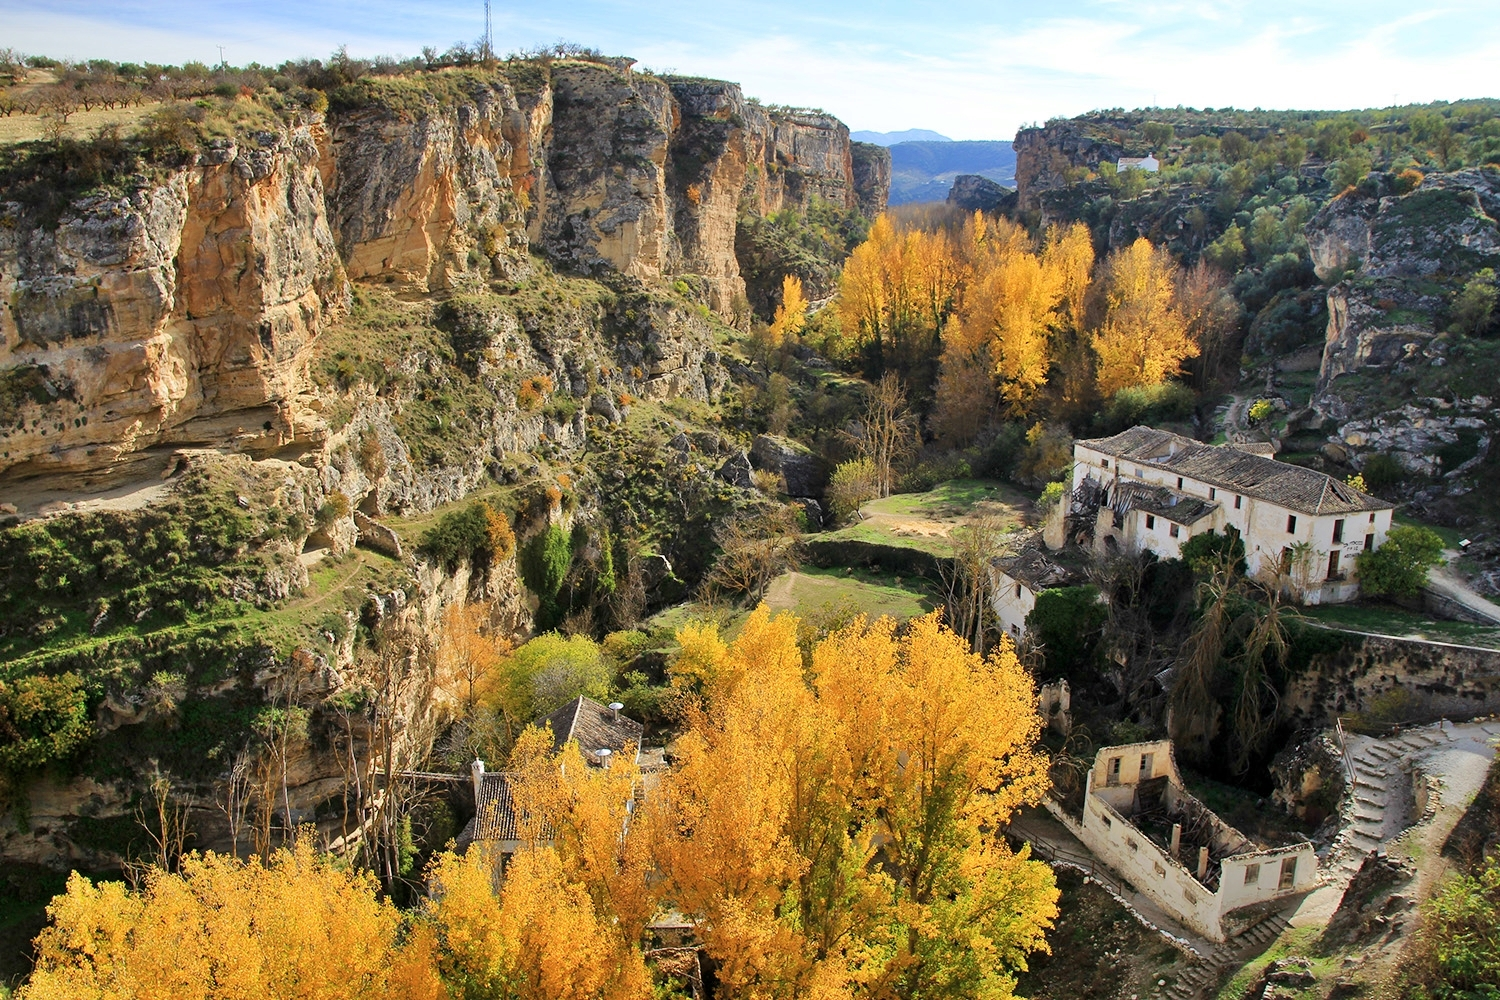 """Autumn Canyon"" - Alhama, Granada - LS01187"